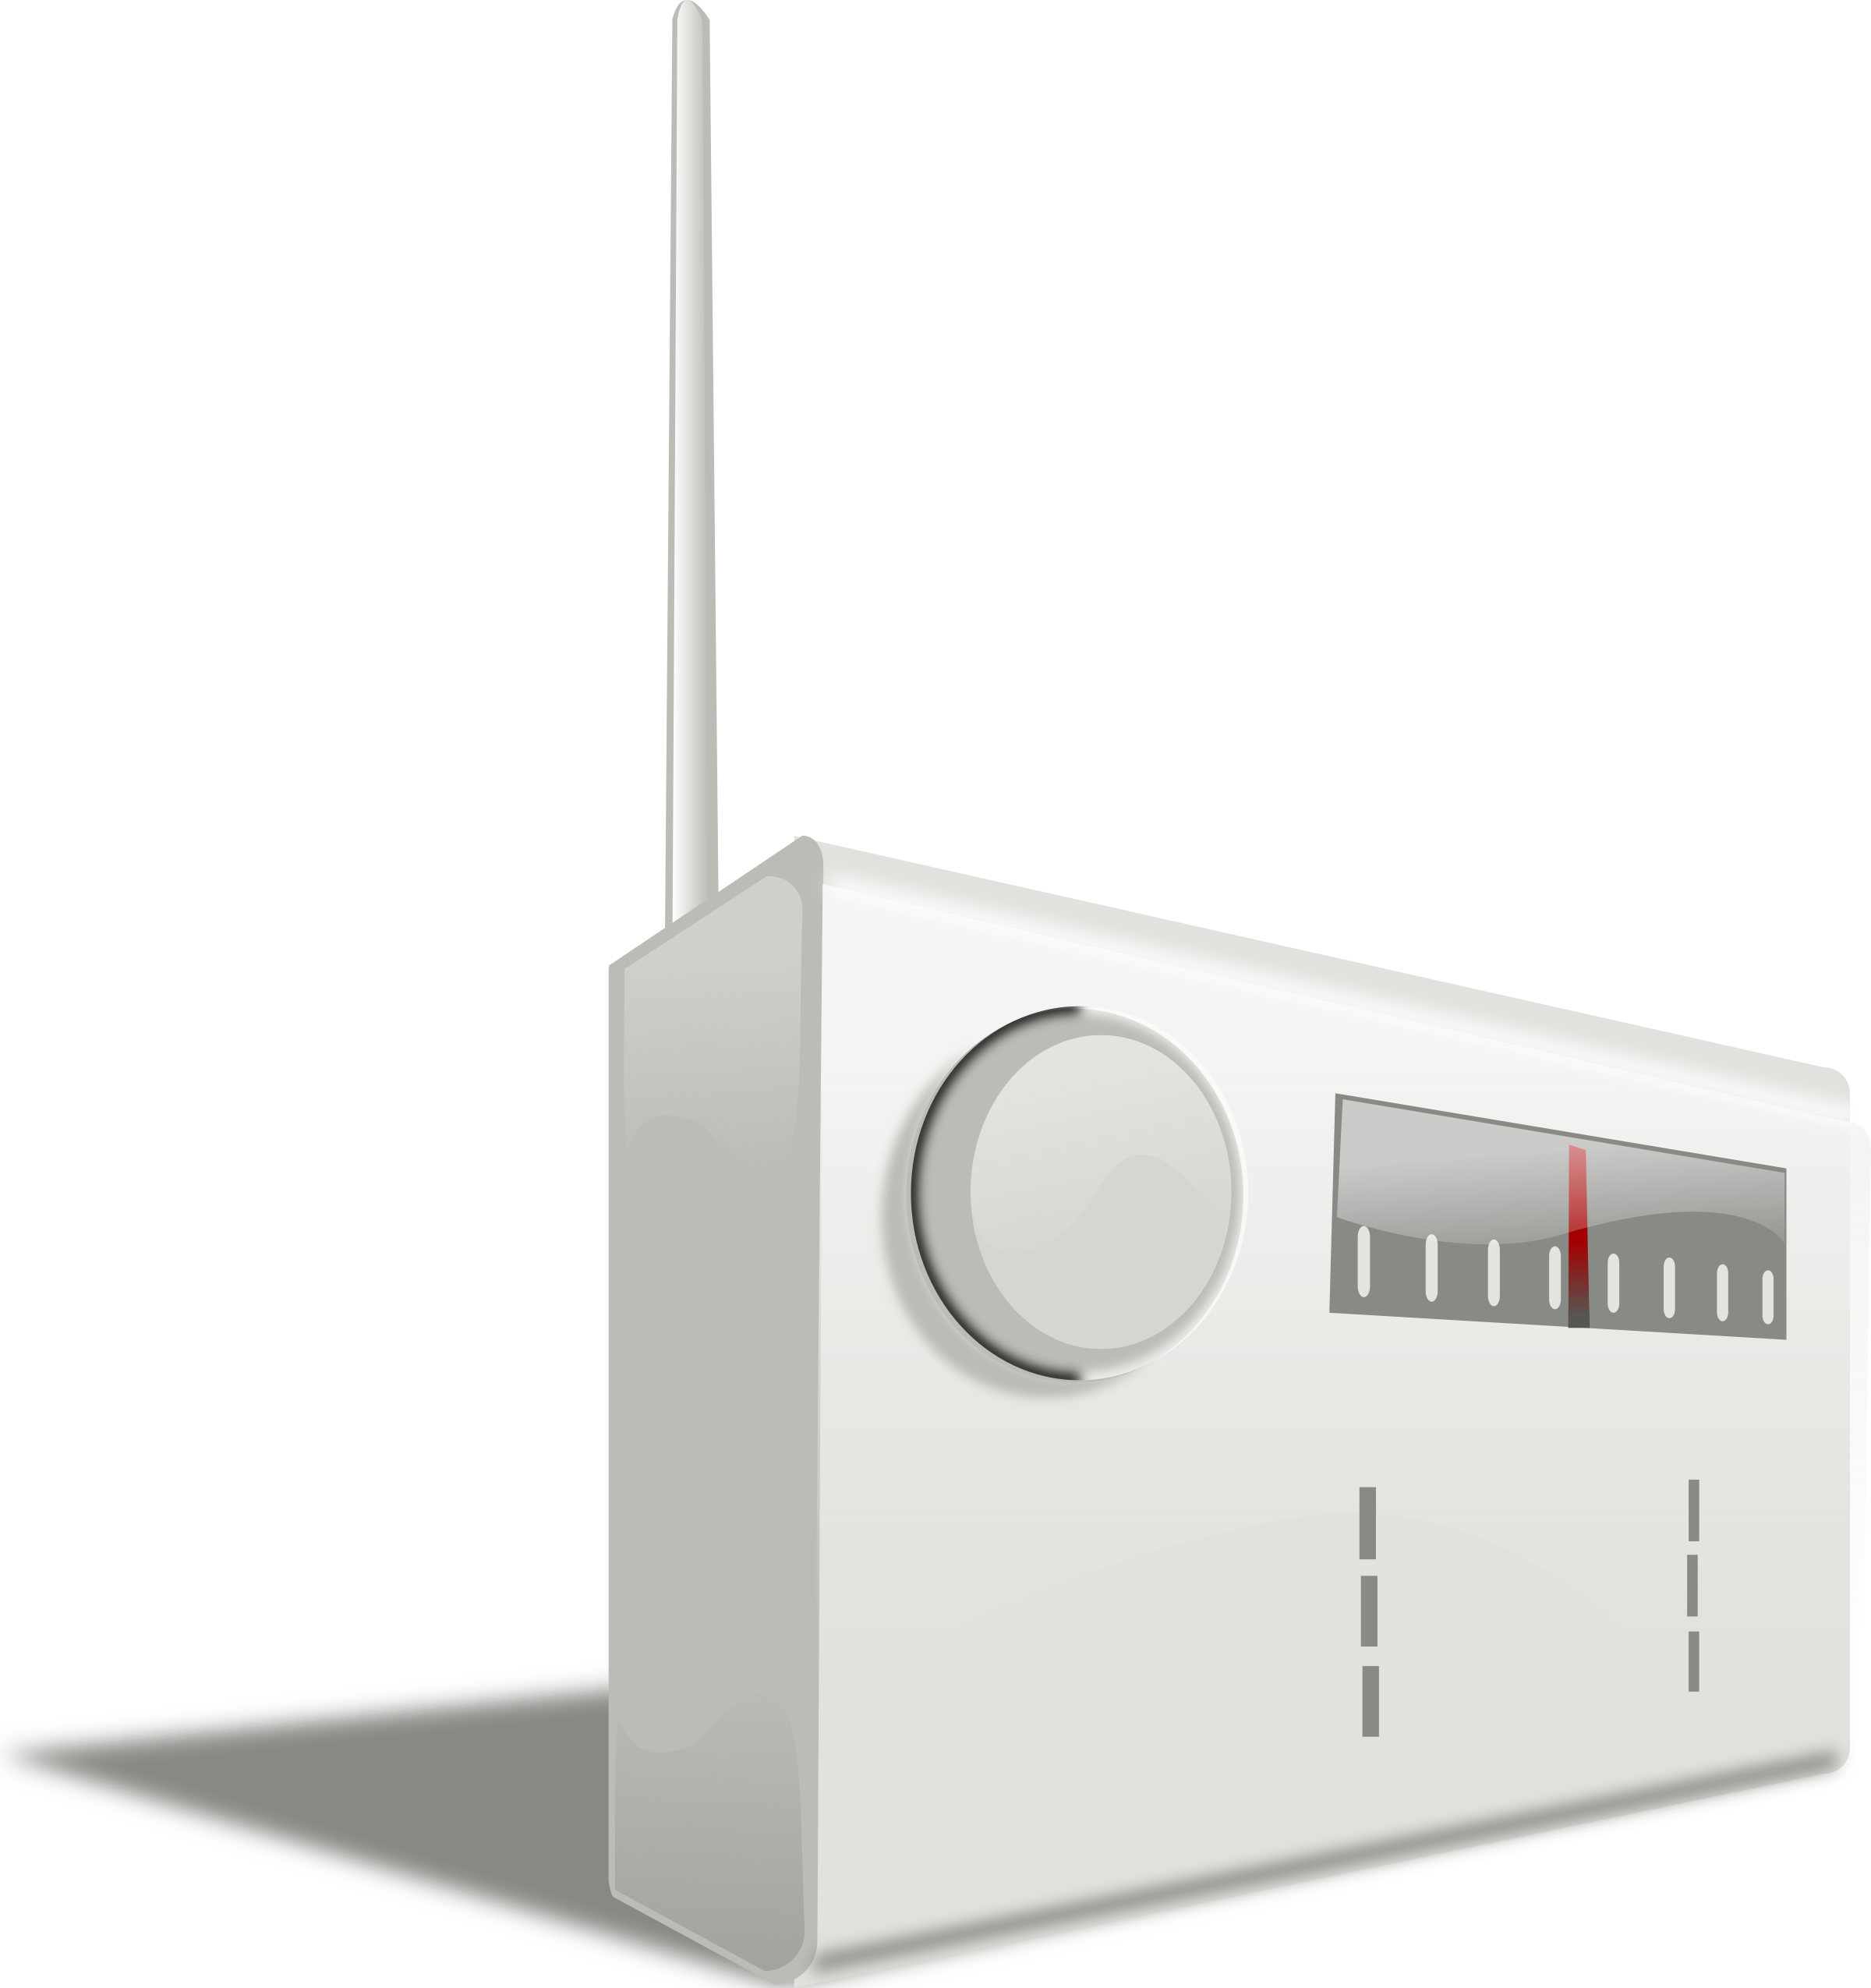 Simple radio big image. Electronics clipart electronic product